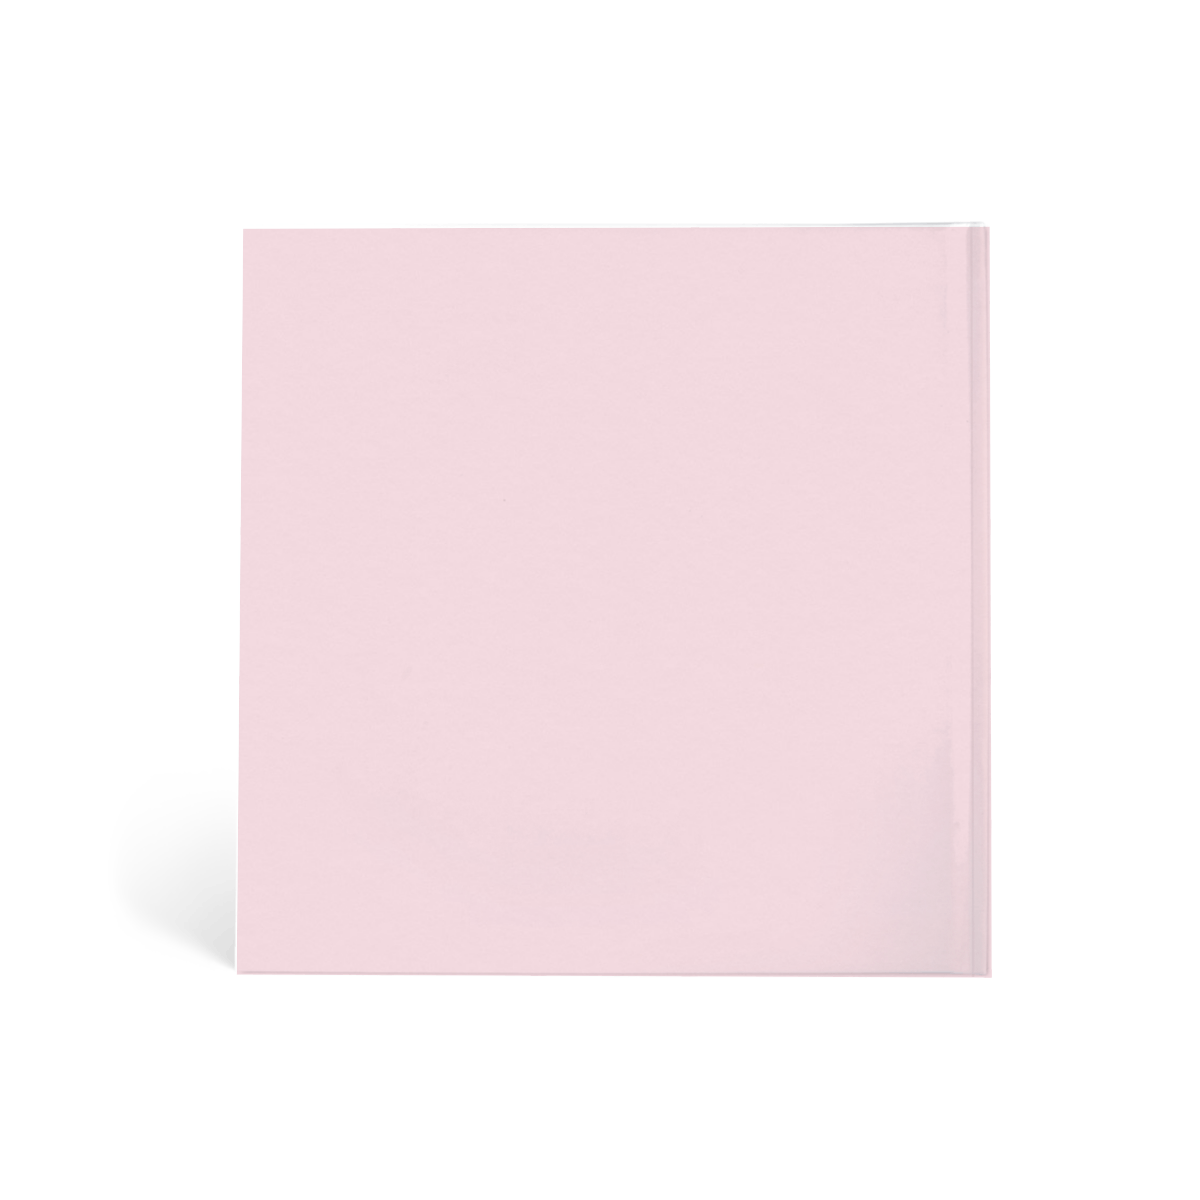 Https%3a%2f%2fwww.papier.com%2fproduct image%2f39847%2f24%2fcolour block 9887 rueckseite 1528903885.png?ixlib=rb 1.1